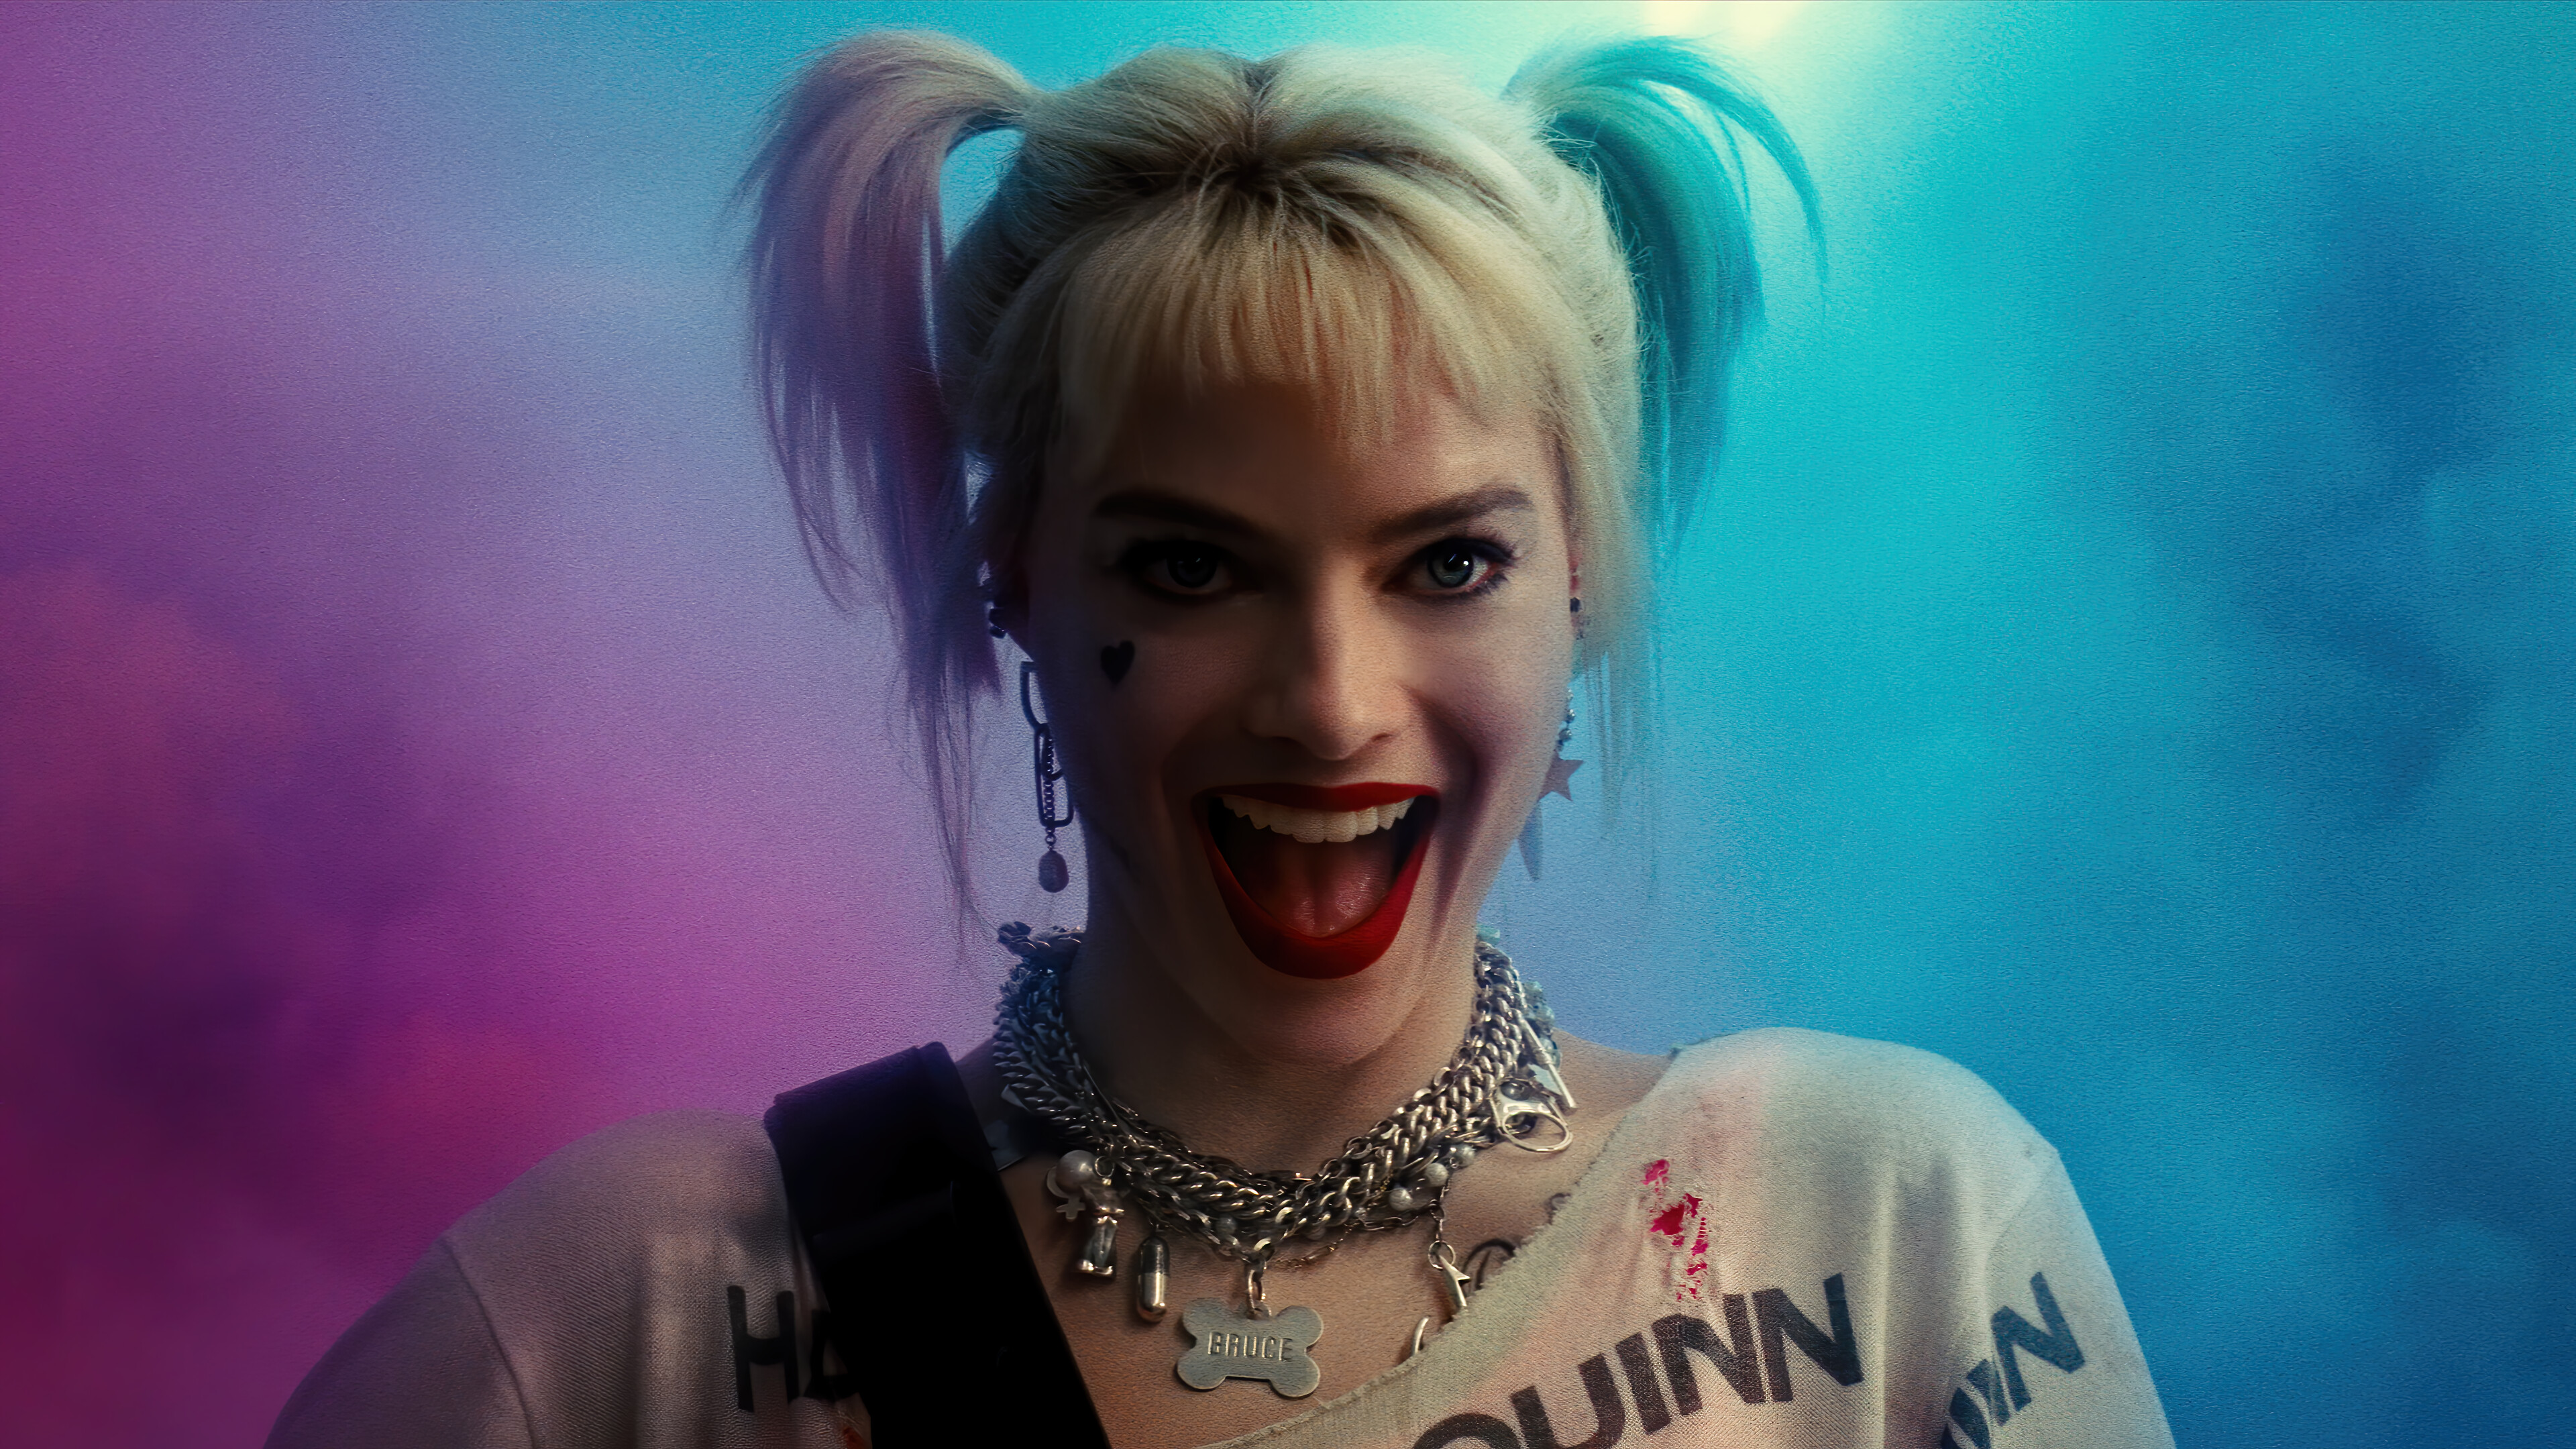 Birds Of Prey Harley Quinn 4k Ultra Hd Wallpaper Background Image 3840x2160 Id 1065110 Wallpaper Abyss